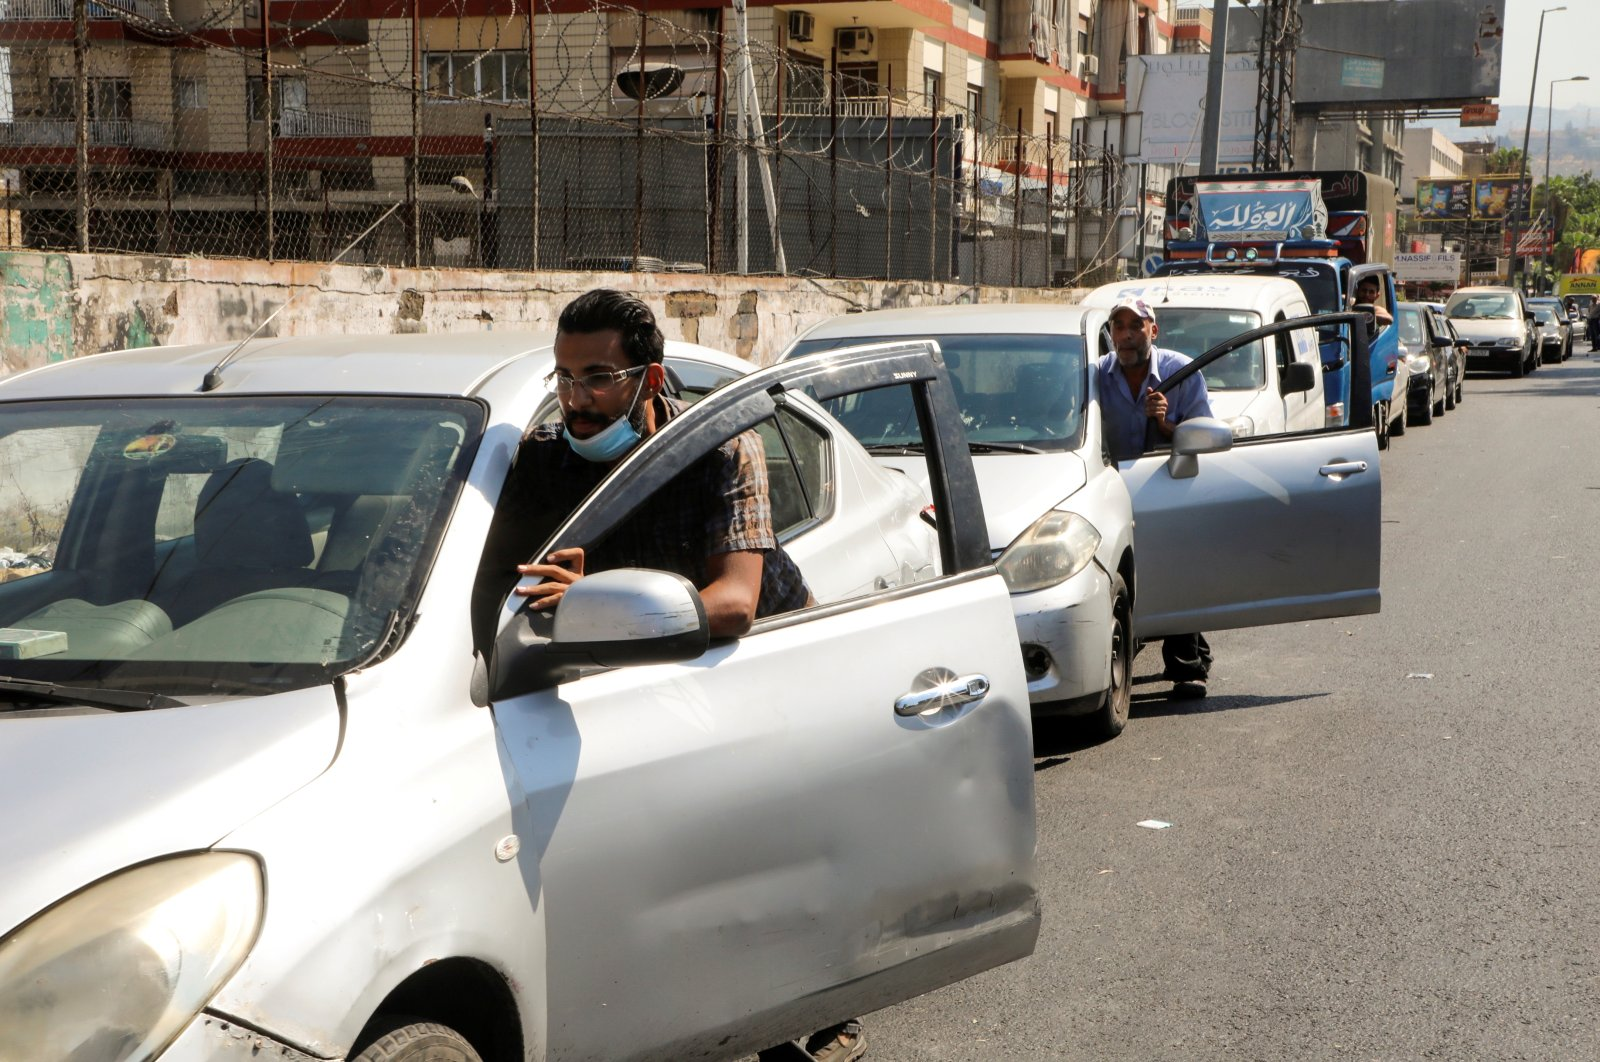 People push their cars due to a lack of fuel, near a gas station in Dora, Lebanon, Aug. 17, 2021. (Reuters Photo)